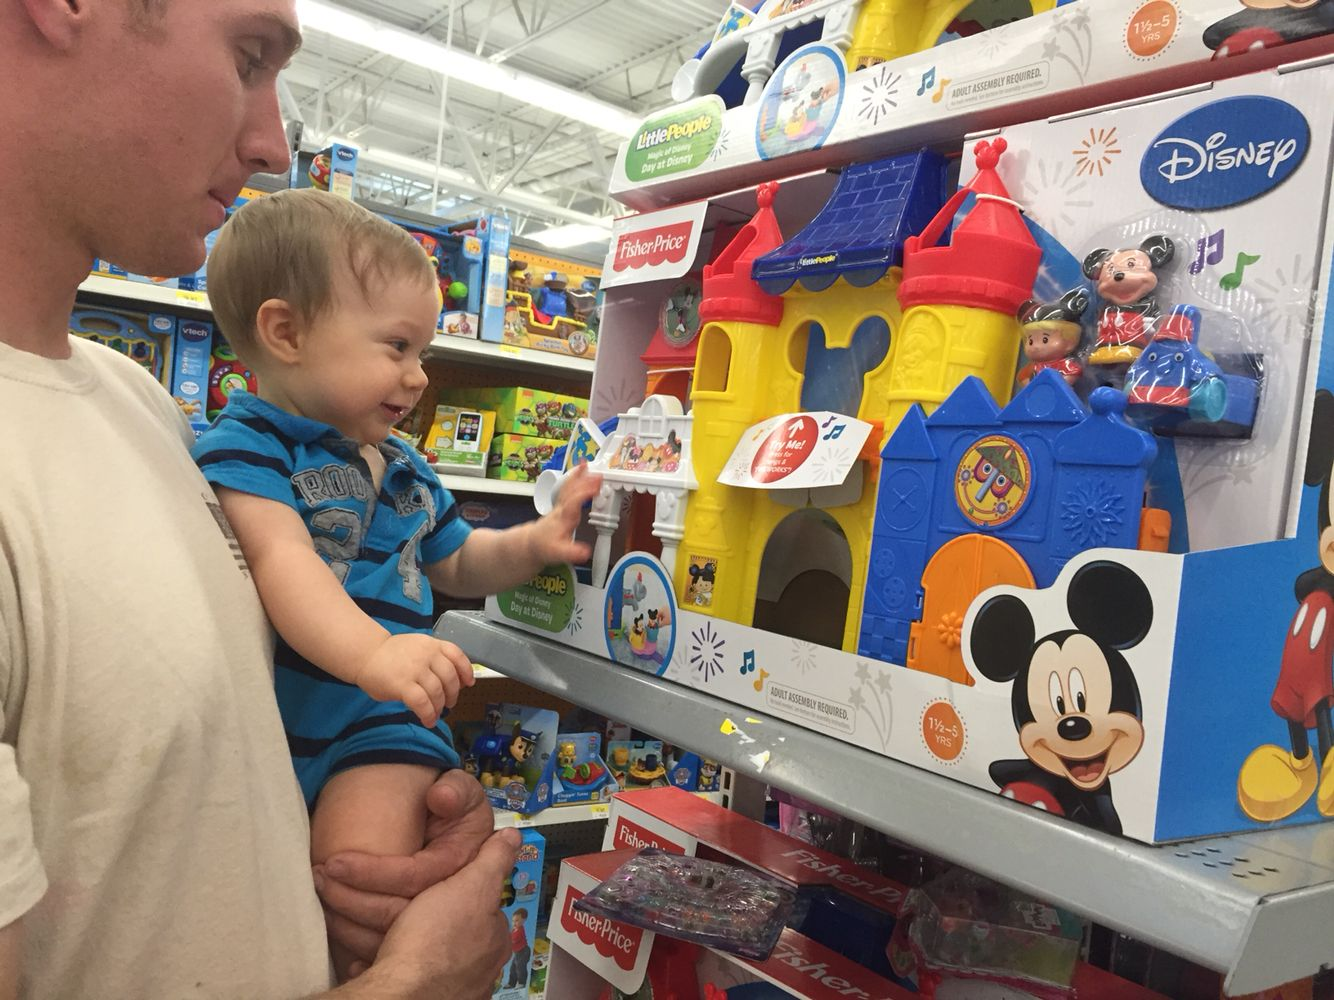 Happy Birthday Gifts Mickey Mouse Castle At Walmart In Toy Section